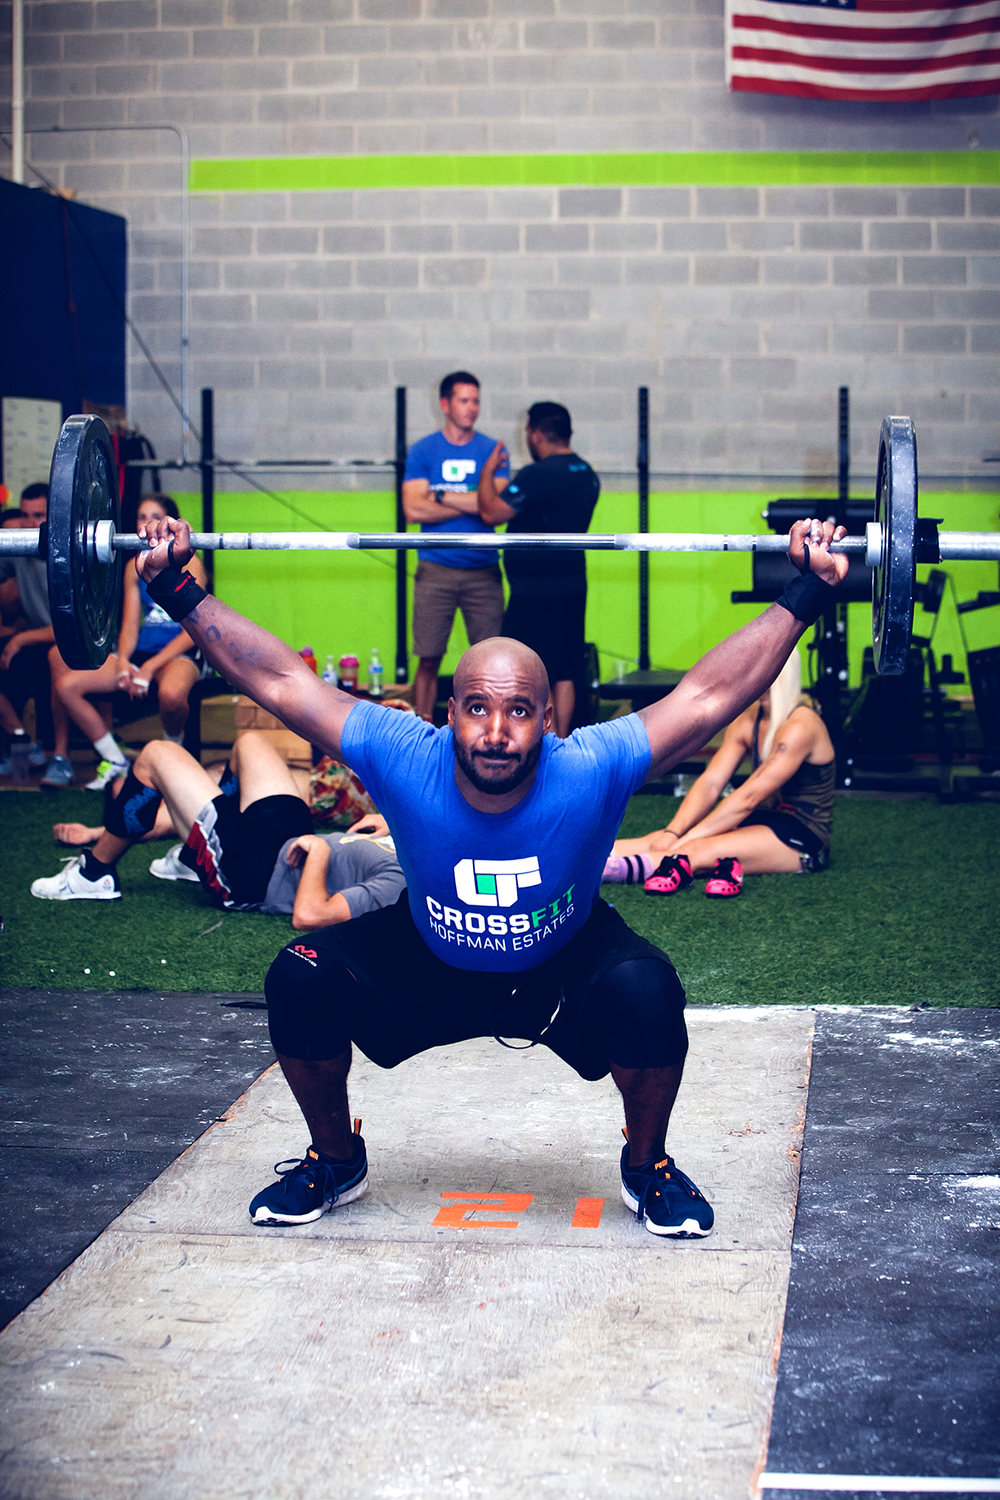 crossfit-hoffman-estates-2016-156_RT.png